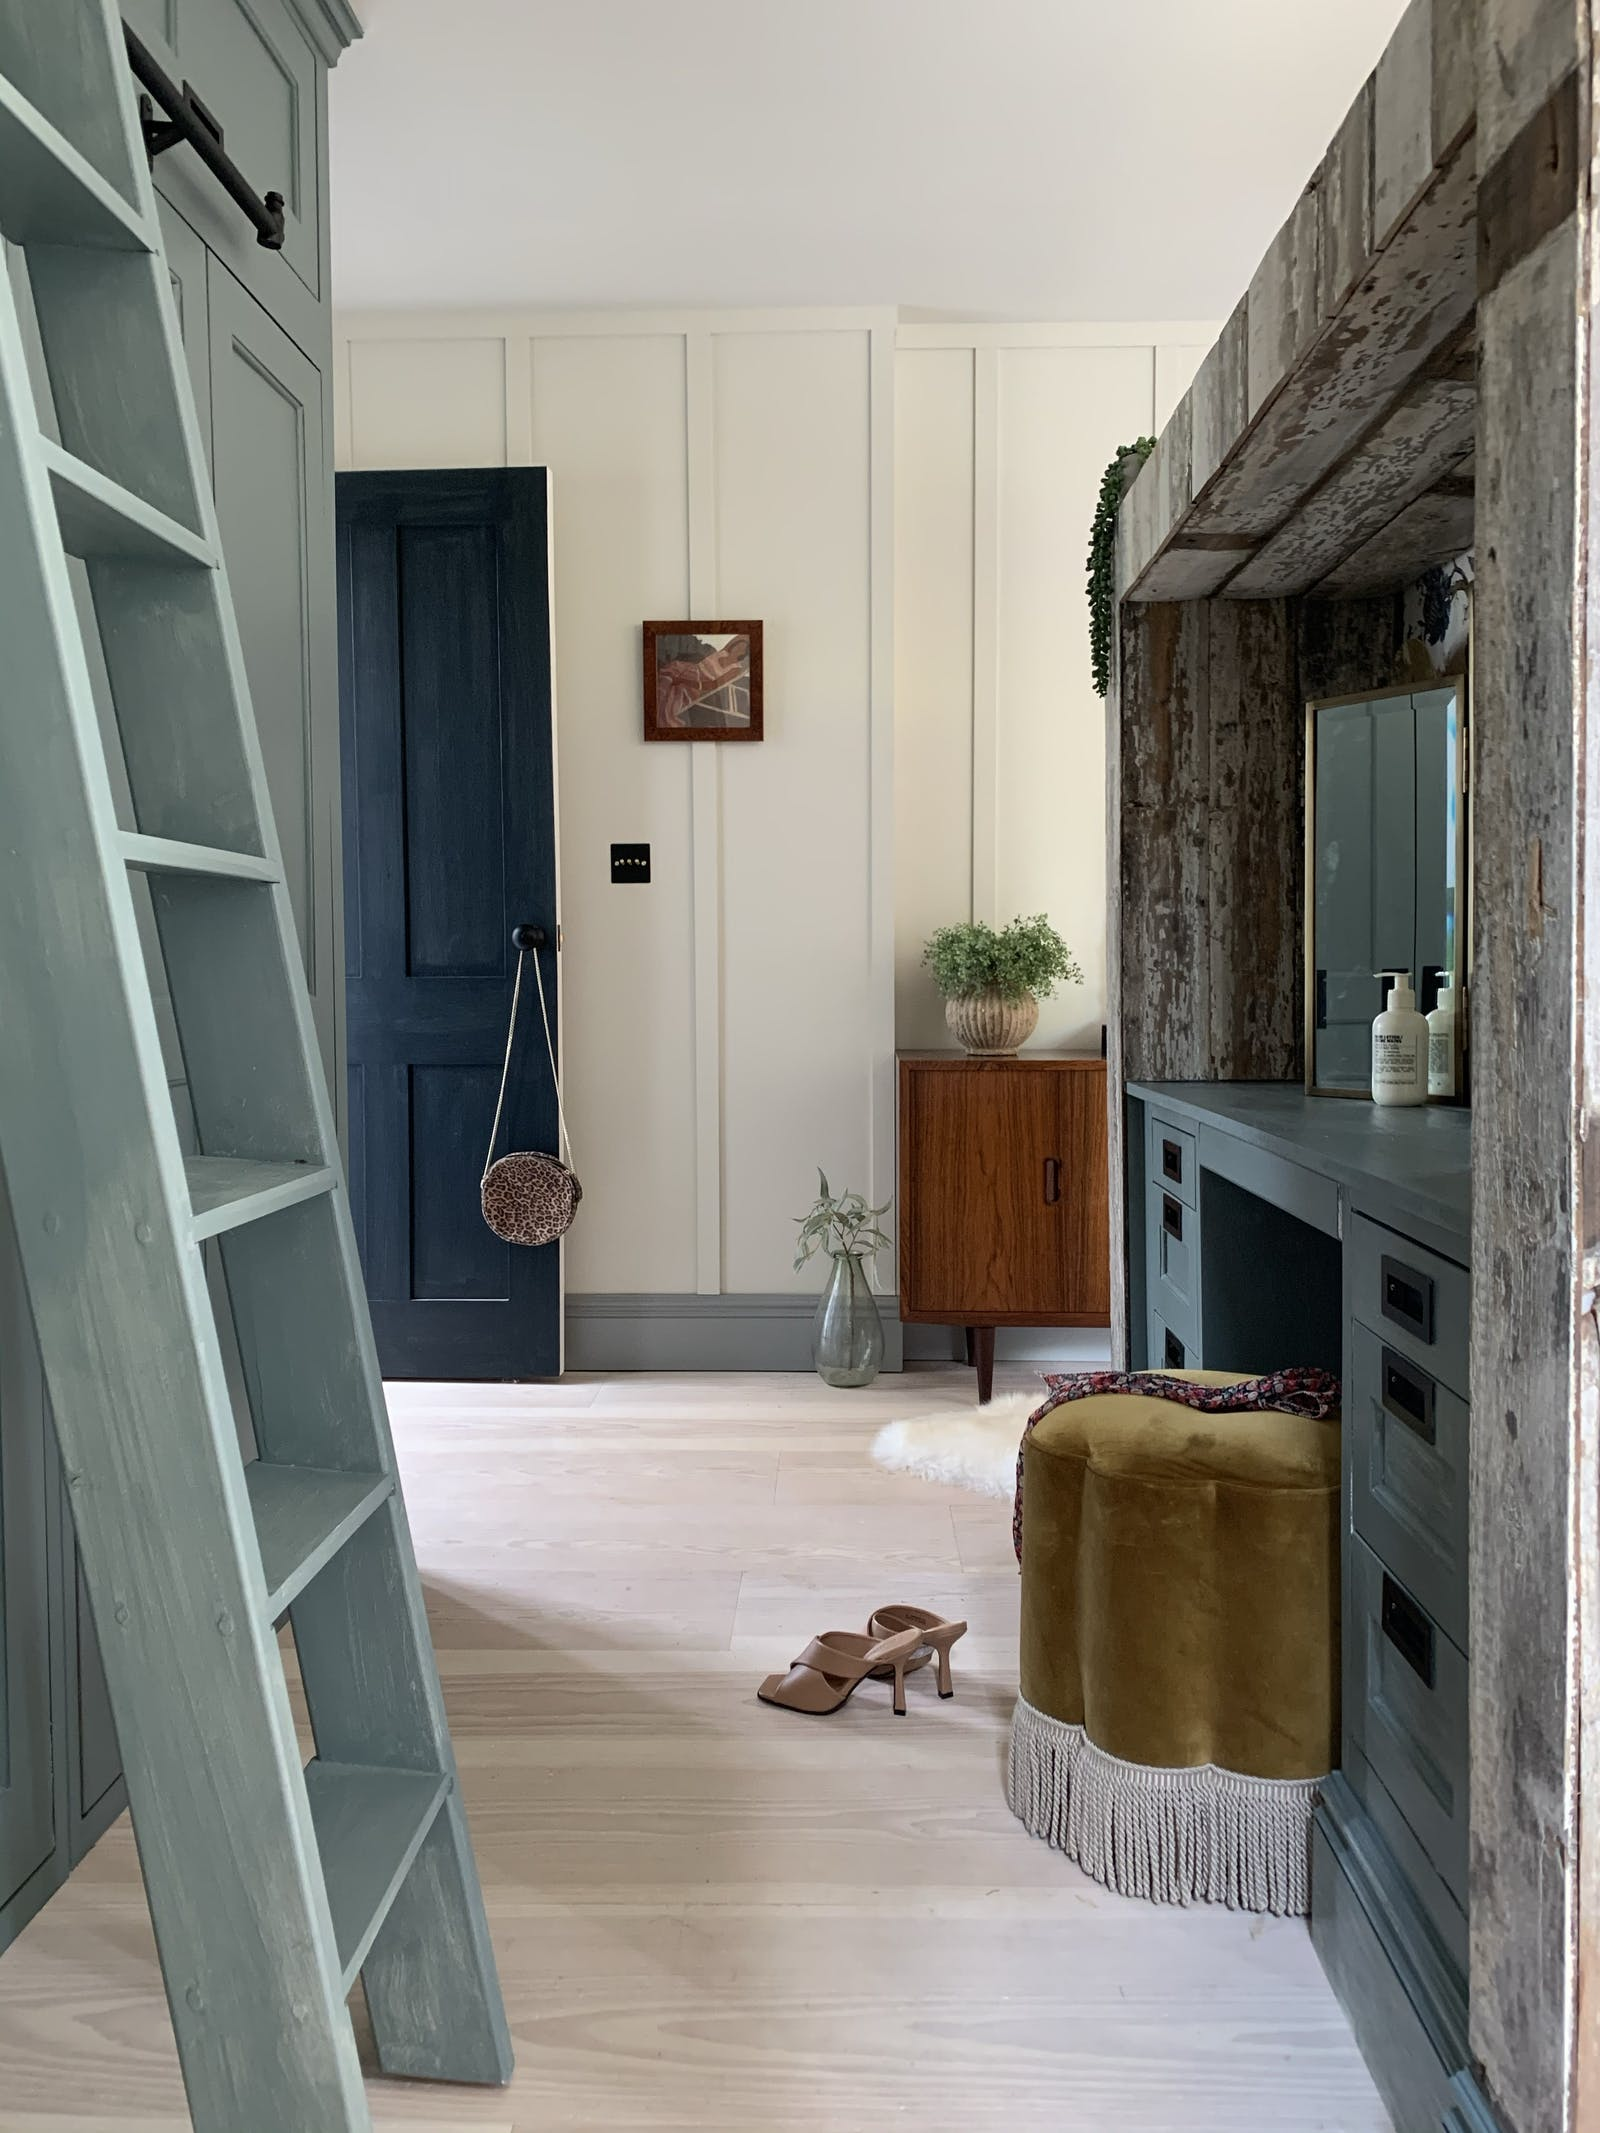 Hallway with a wooden ladder and a dressing table